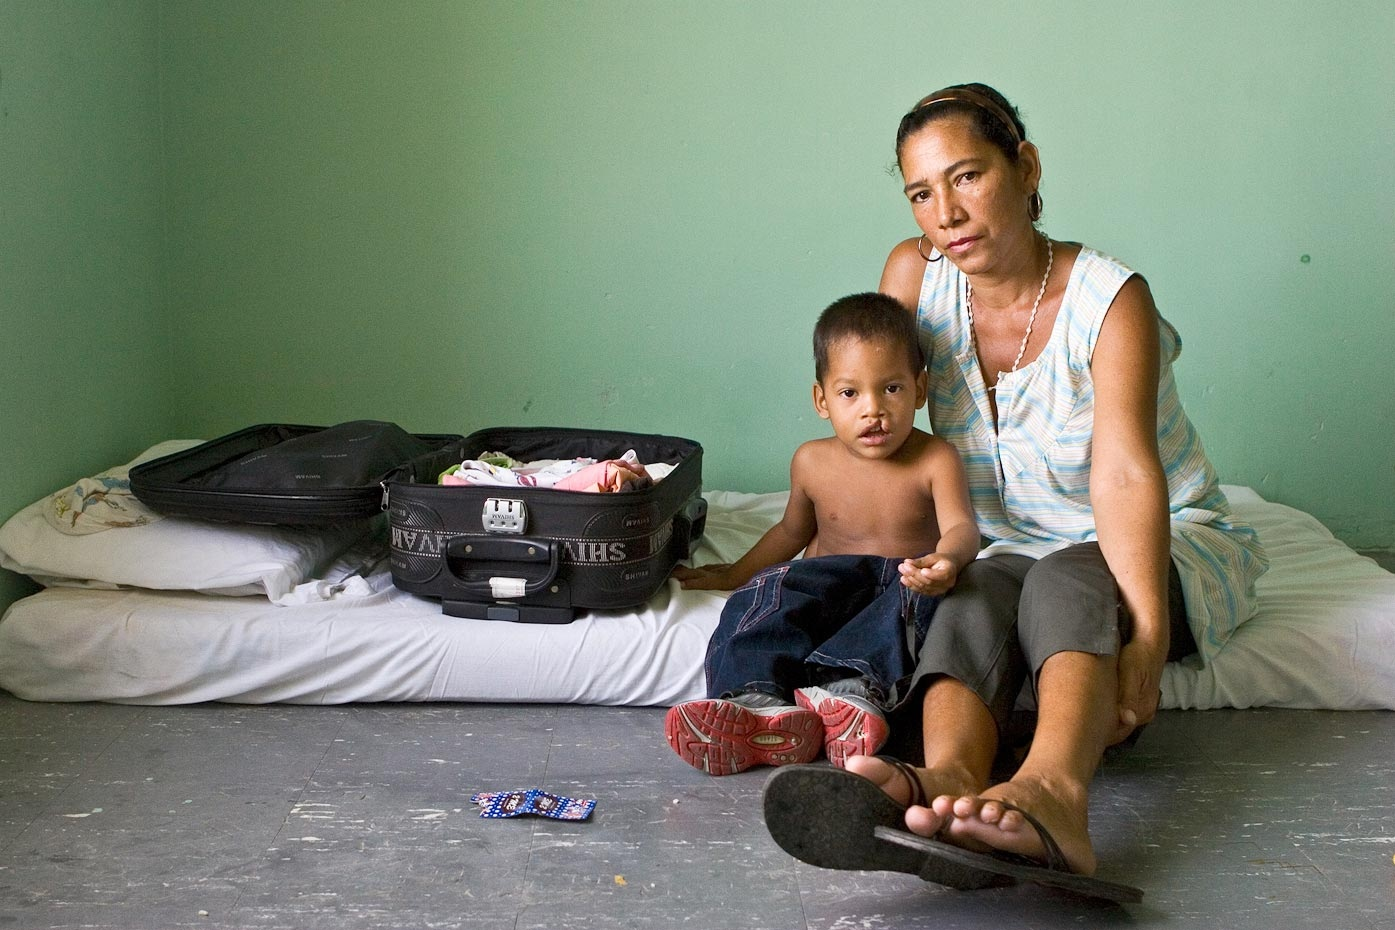 Cesar Comilo with his mother Santa Marta, Colombia, 2007 Some families travel for days to see the doctors. The hospital in Colombia allows them to stay for the whole week while they wait for their surgeries, providing mattresses to sleep on and 3 meals per day. For Healing the Children Northeast